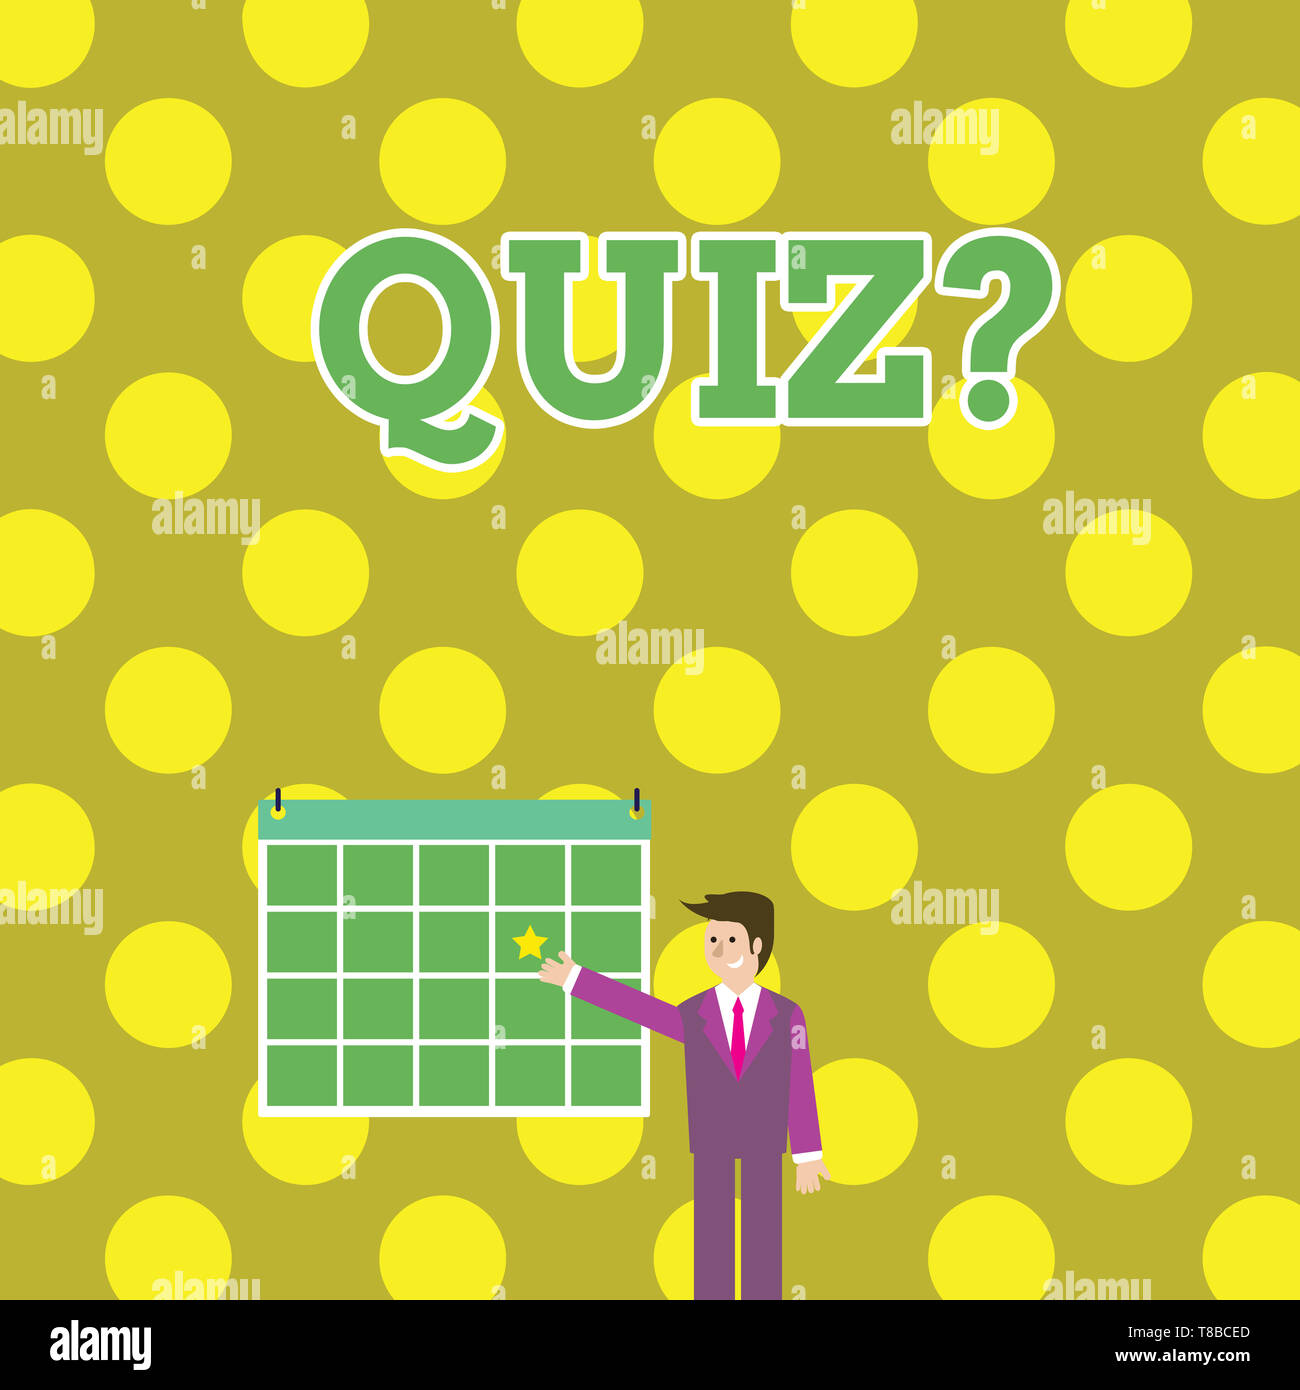 Writing note showing Quiz Question. Business concept for test of knowledge as competition between individuals or teams Businessman Smiling and Pointin - Stock Image